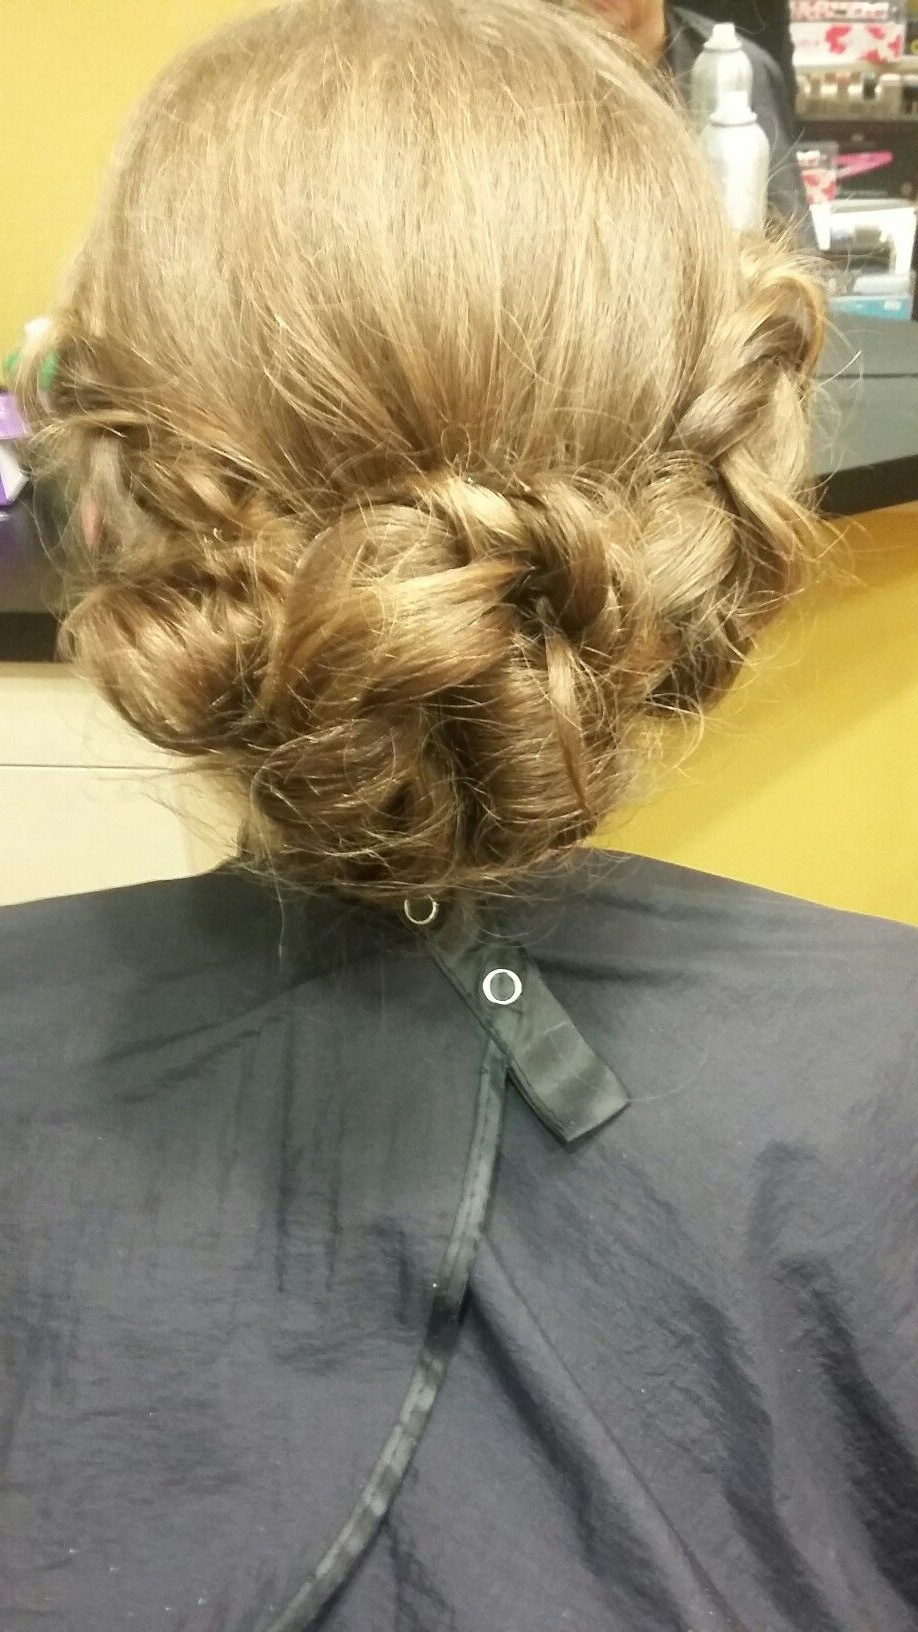 Homecoming Hairstyle | Hair | Pinterest | Hair Styles, Homecoming Throughout Homecoming Short Hairstyles (View 13 of 25)